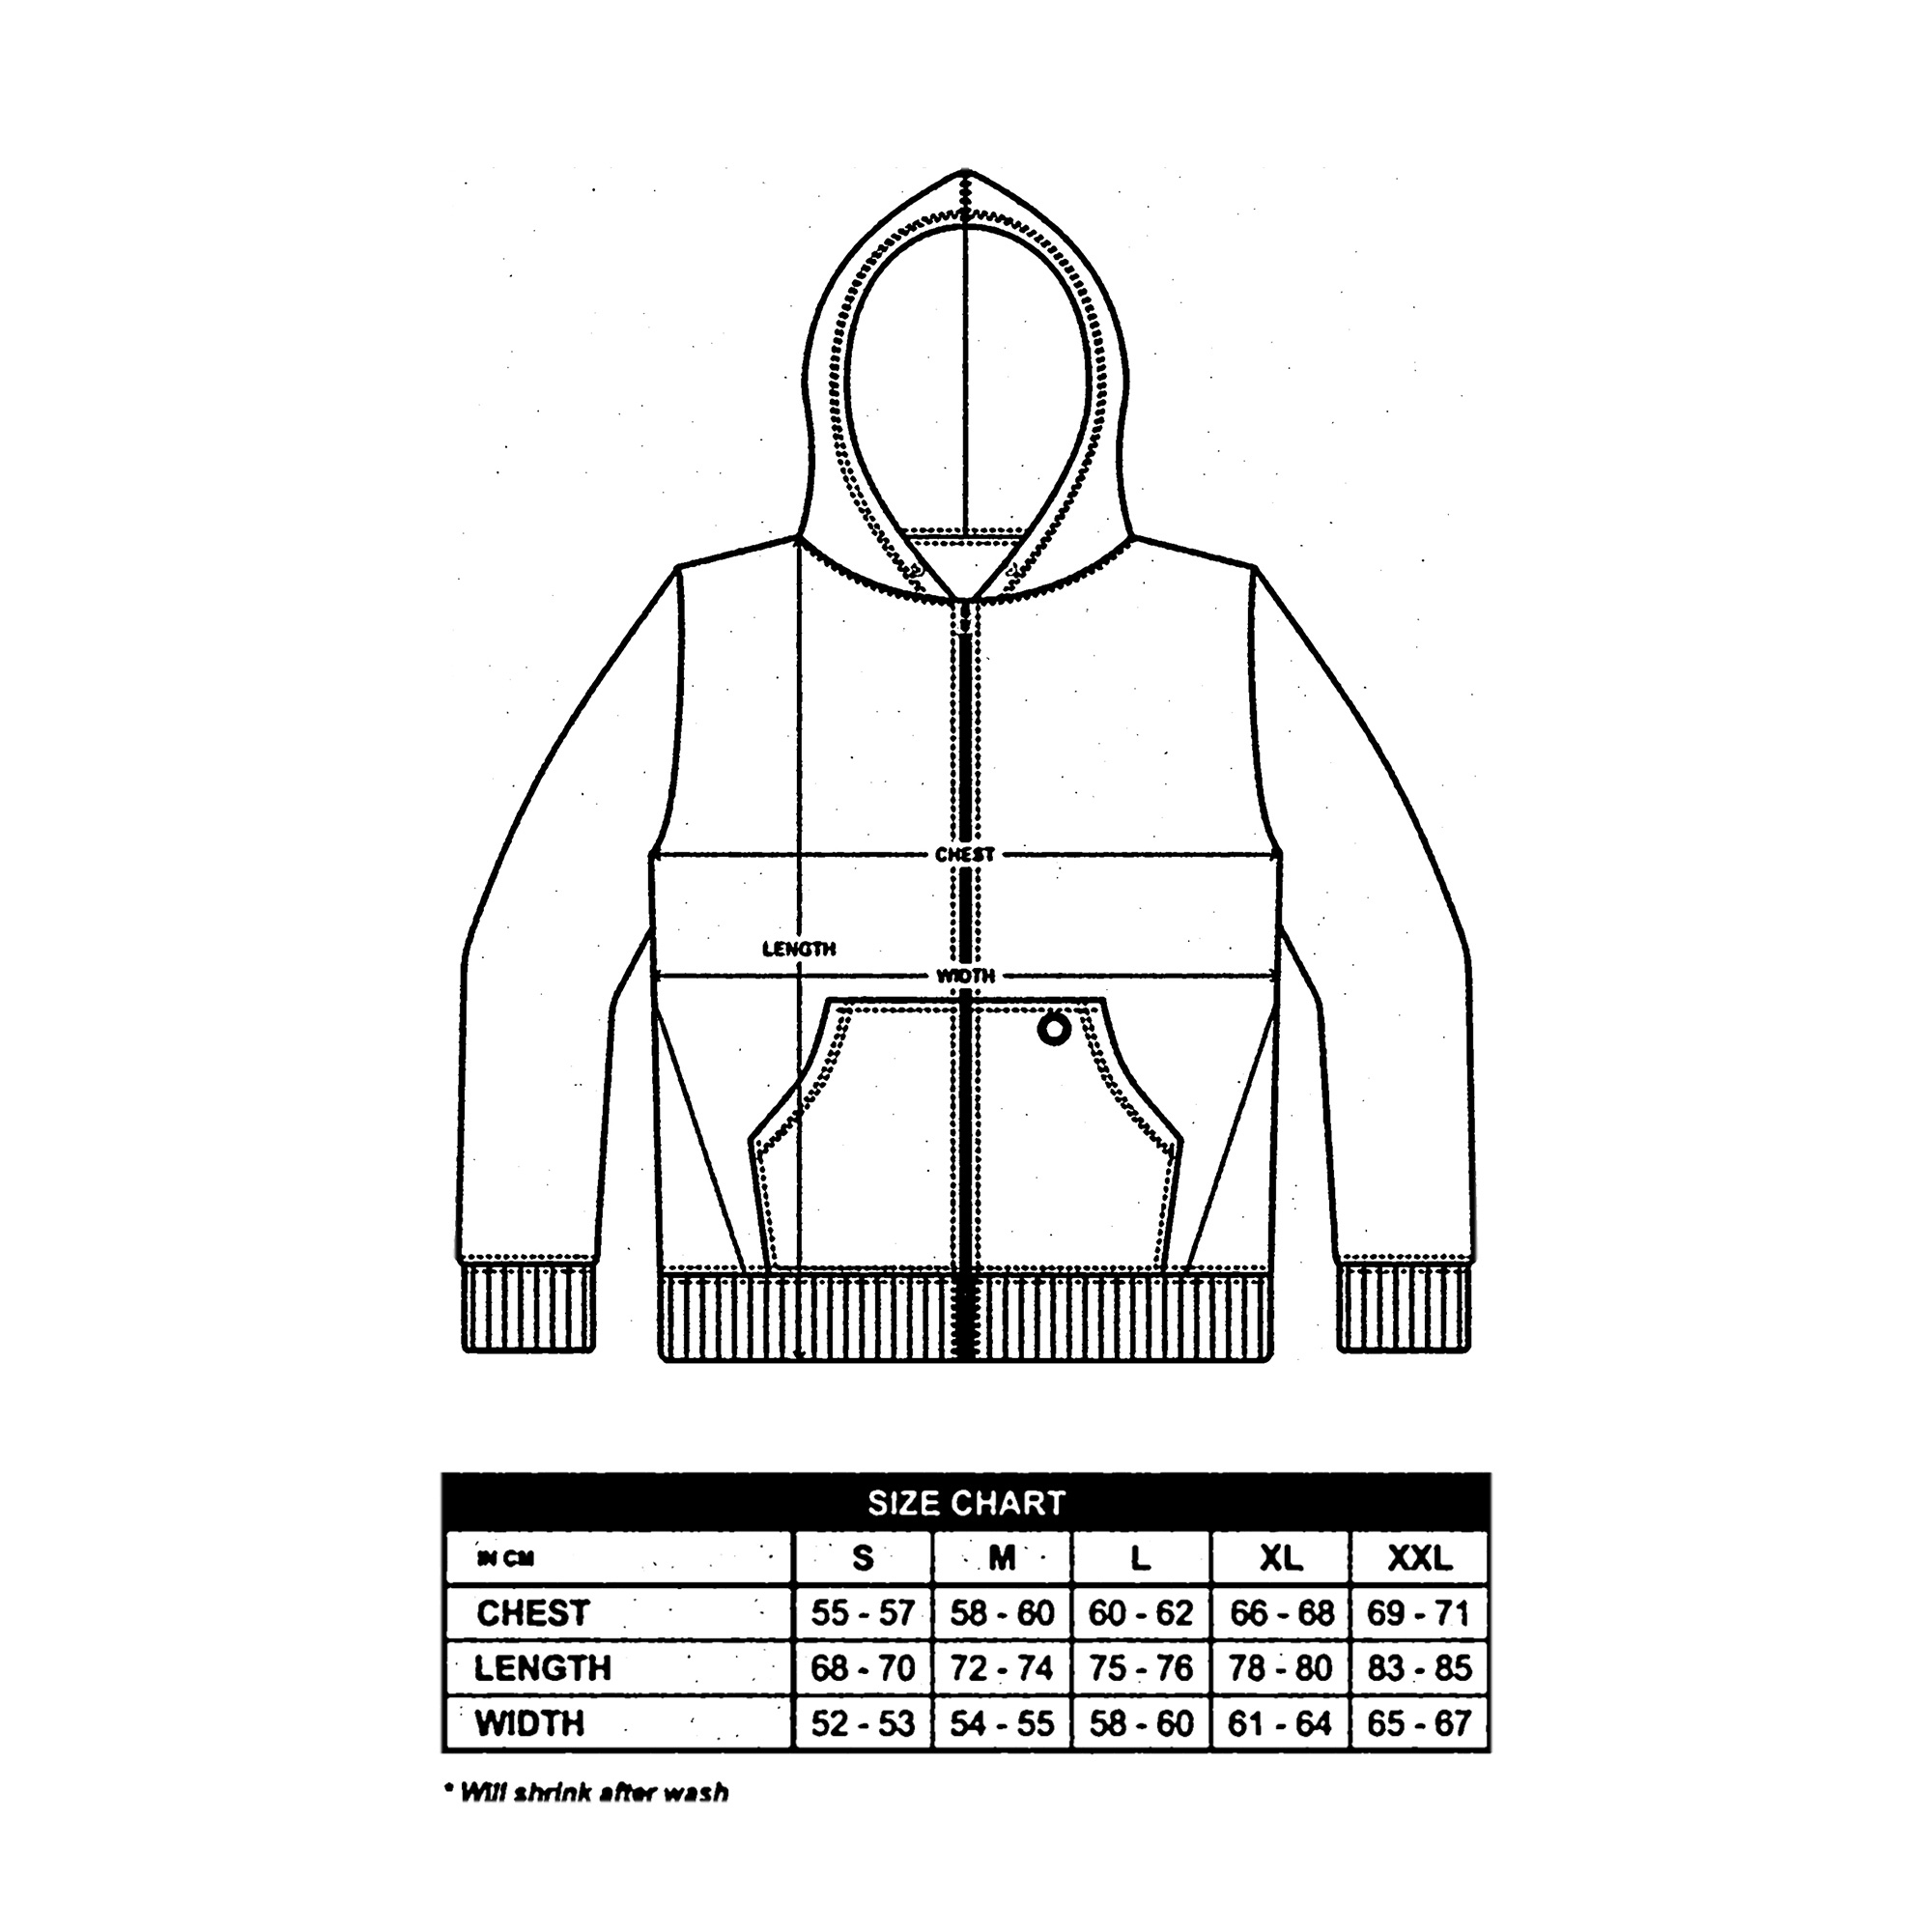 Zip Up Hoodies Size Guide